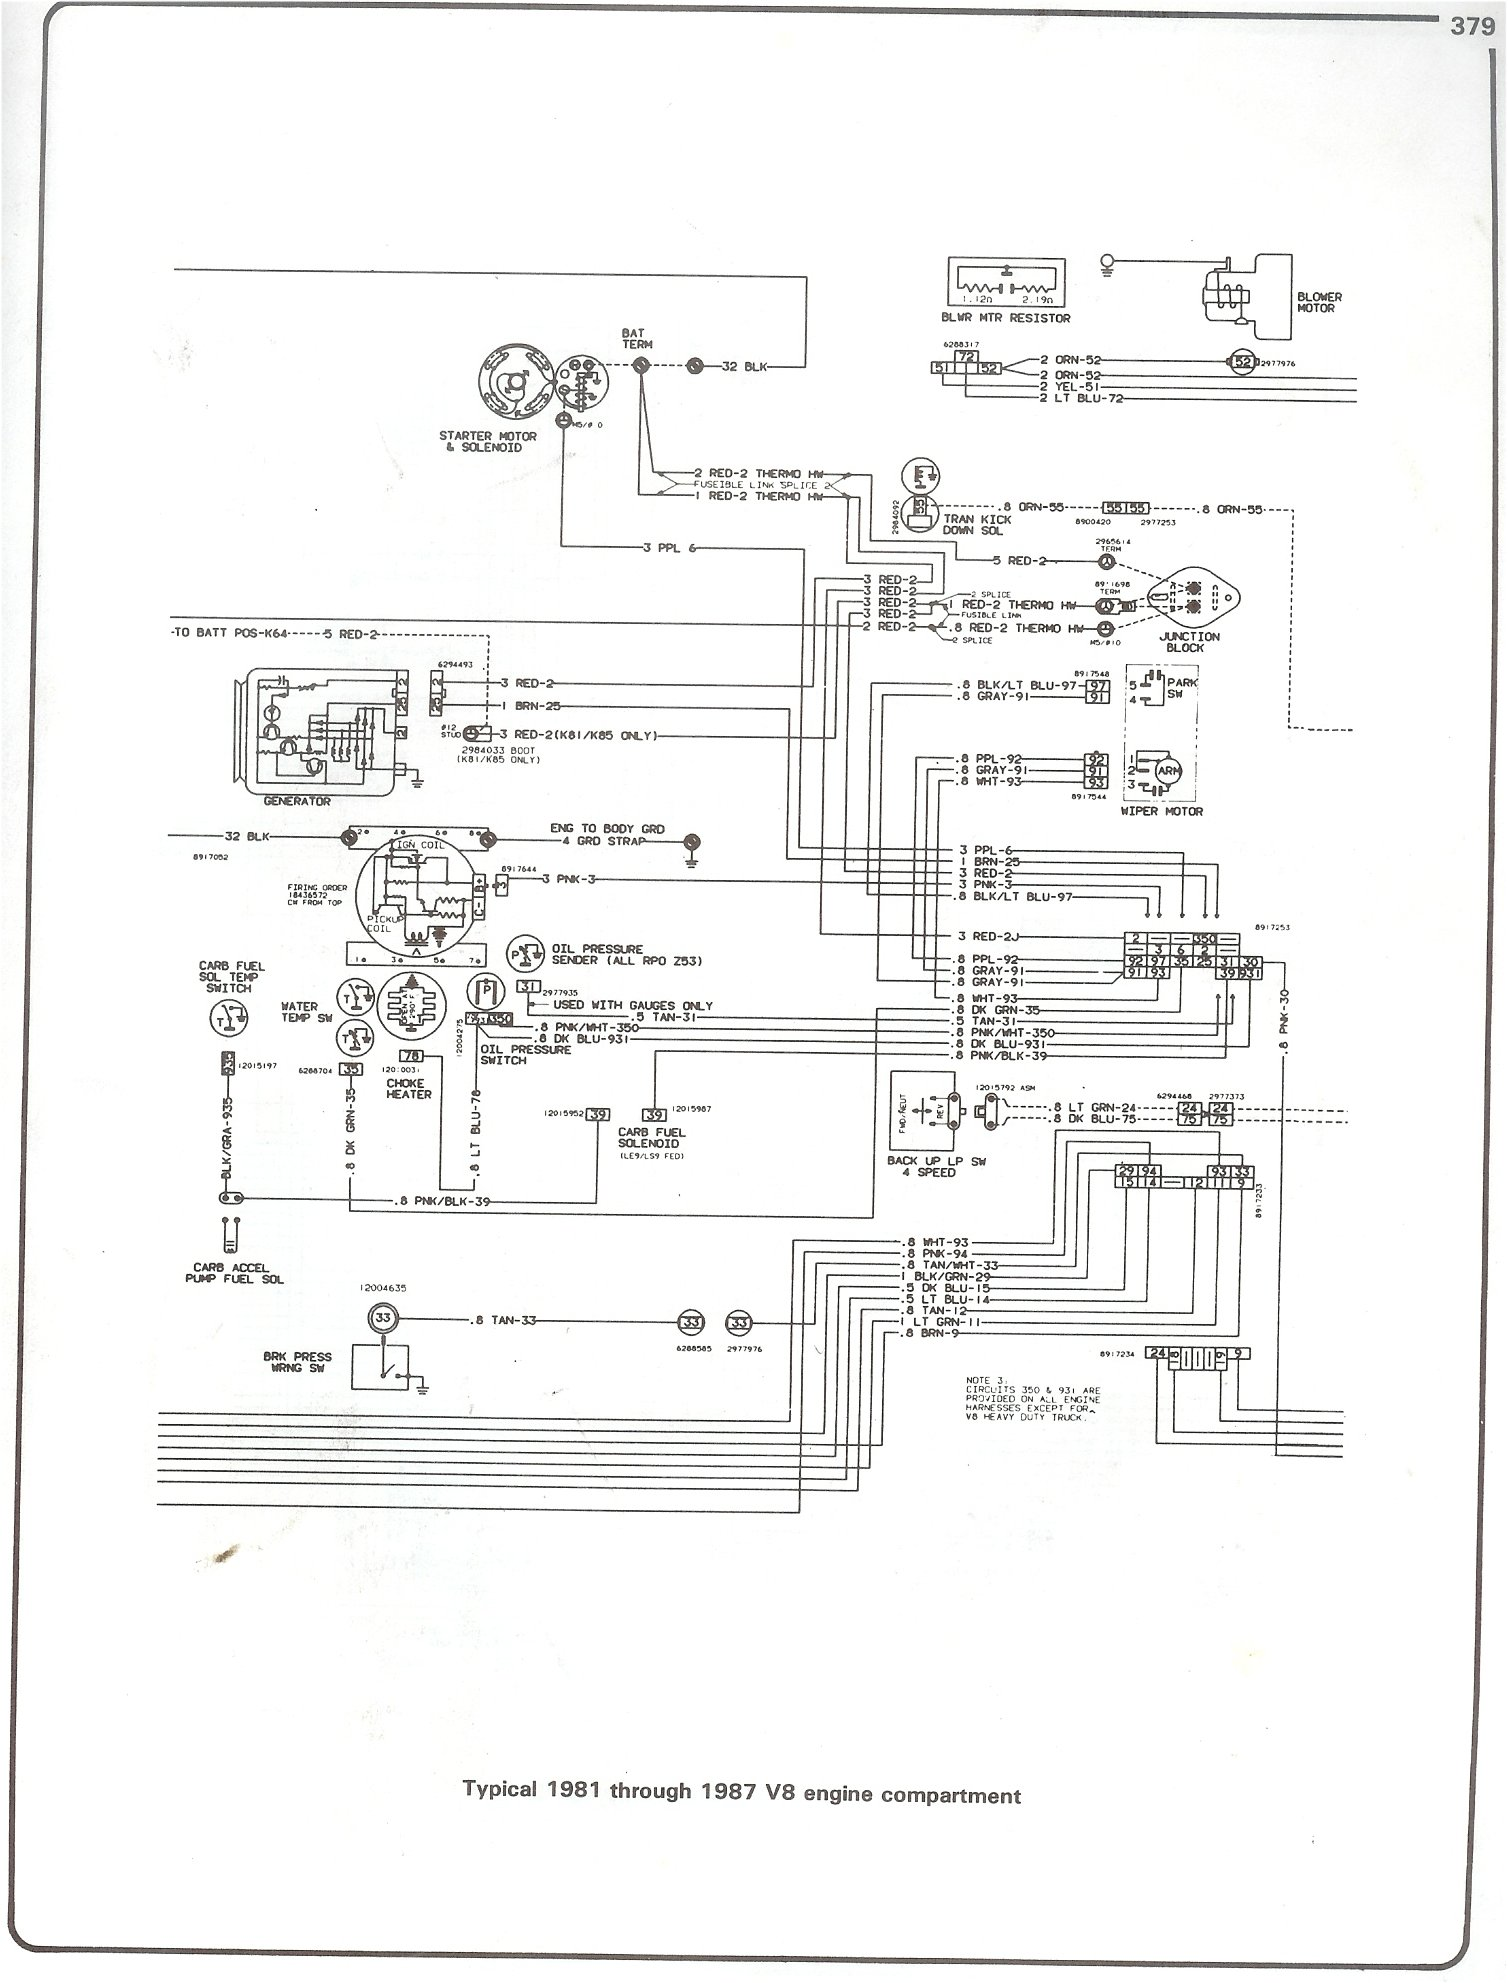 81 87_V8_engine complete 73 87 wiring diagrams  at bakdesigns.co